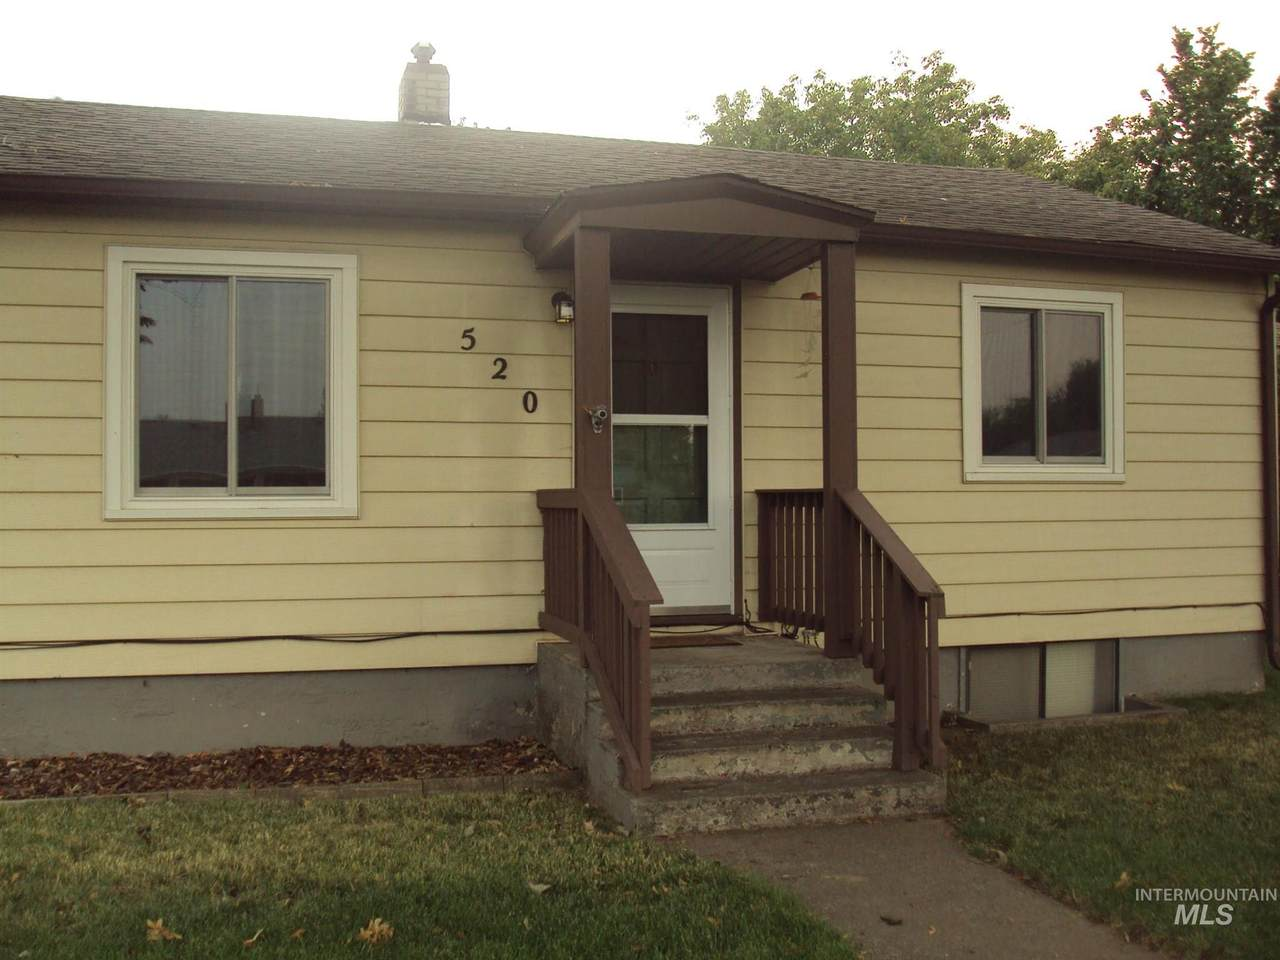 520 Linden Ave - Photo 1